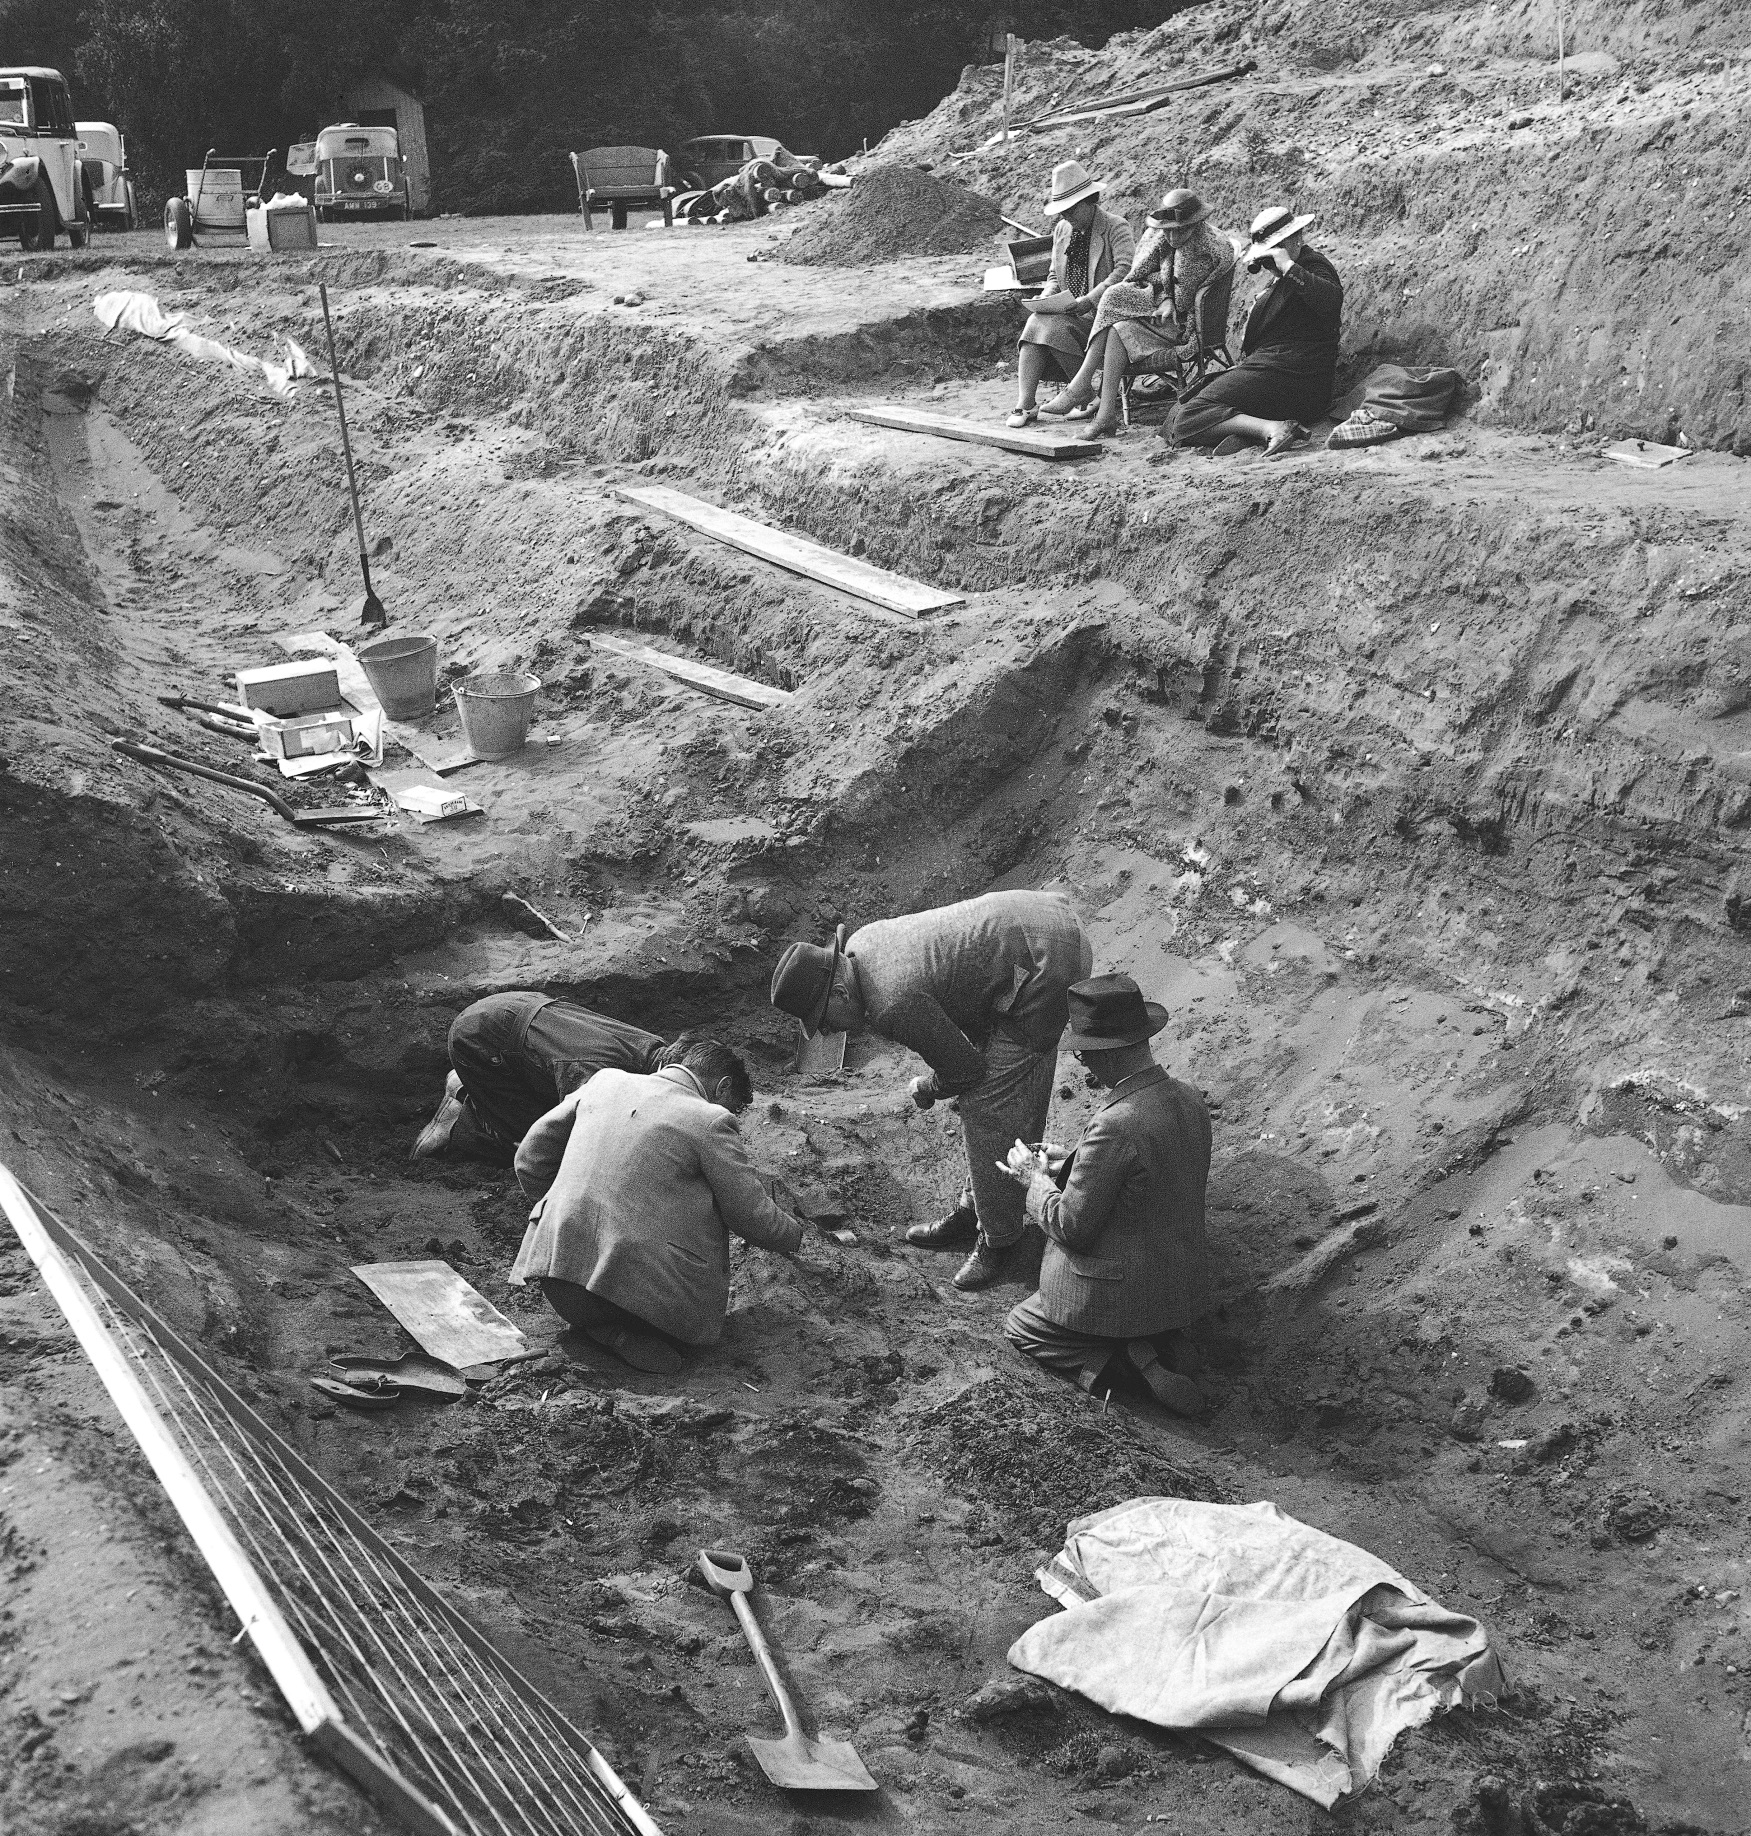 A black and white photo of men excavating in a trench. There is a sheet and a shovel in the trench. The men all wear jackets, trousers and hats. Three people sit at the top of the trench, two are seated on chairs one sits on the ground. There are vehicles in the background.